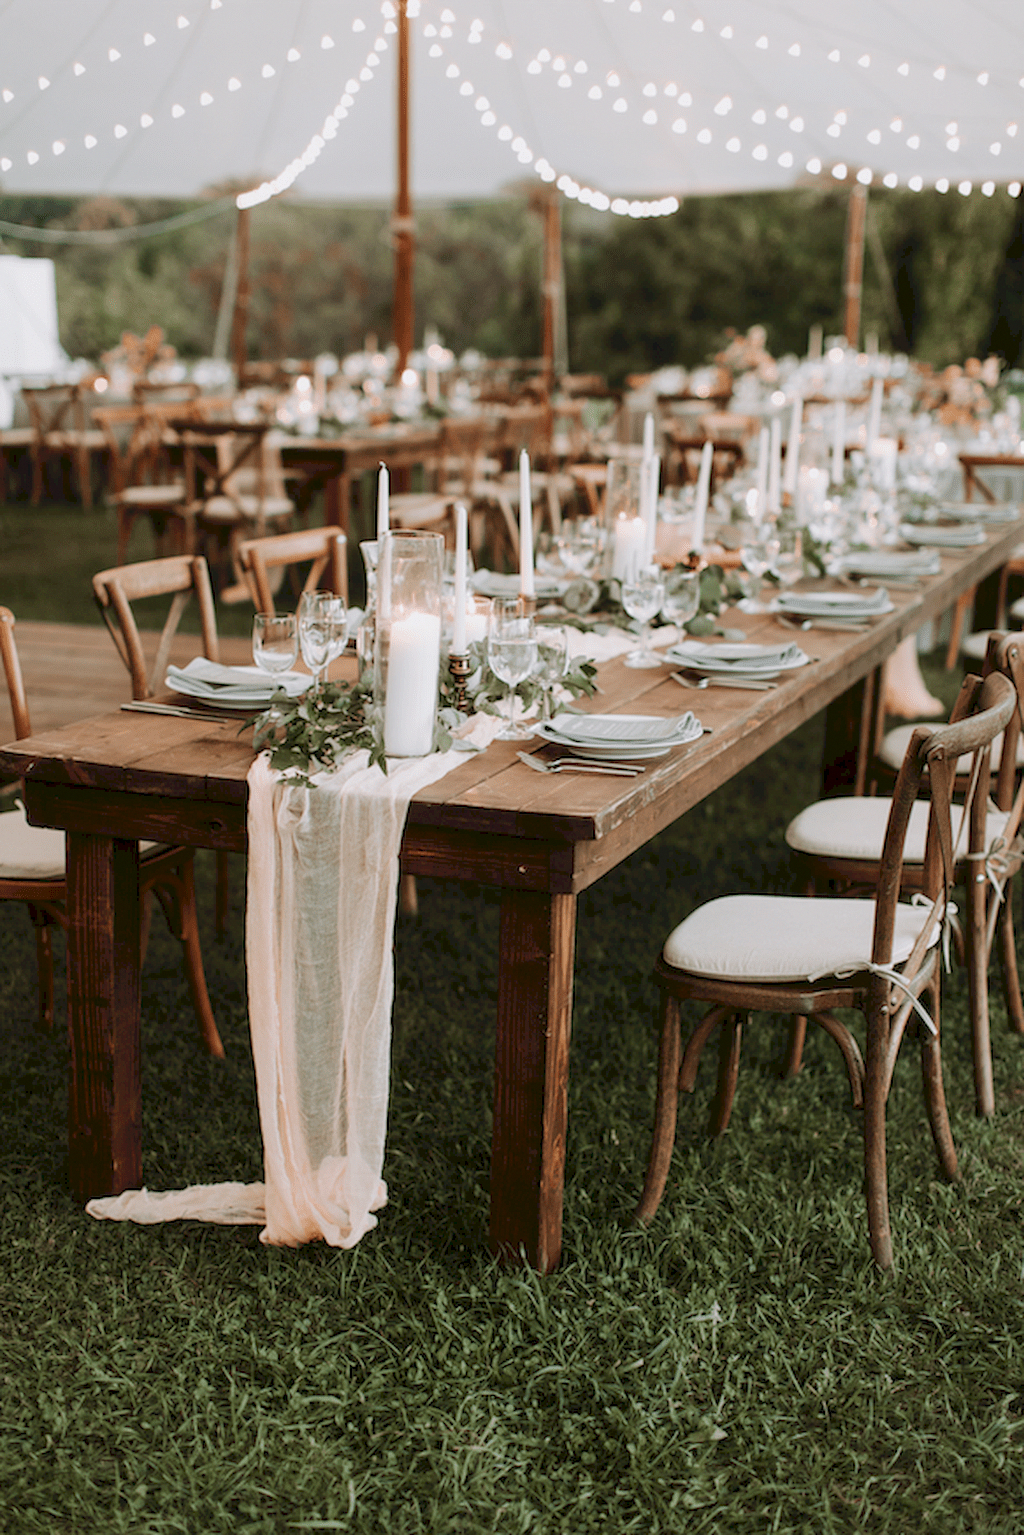 Floral Wedding Centerpieces Planning And Tips Autumn Wedding Reception Tent Wedding Rustic Fall Wedding